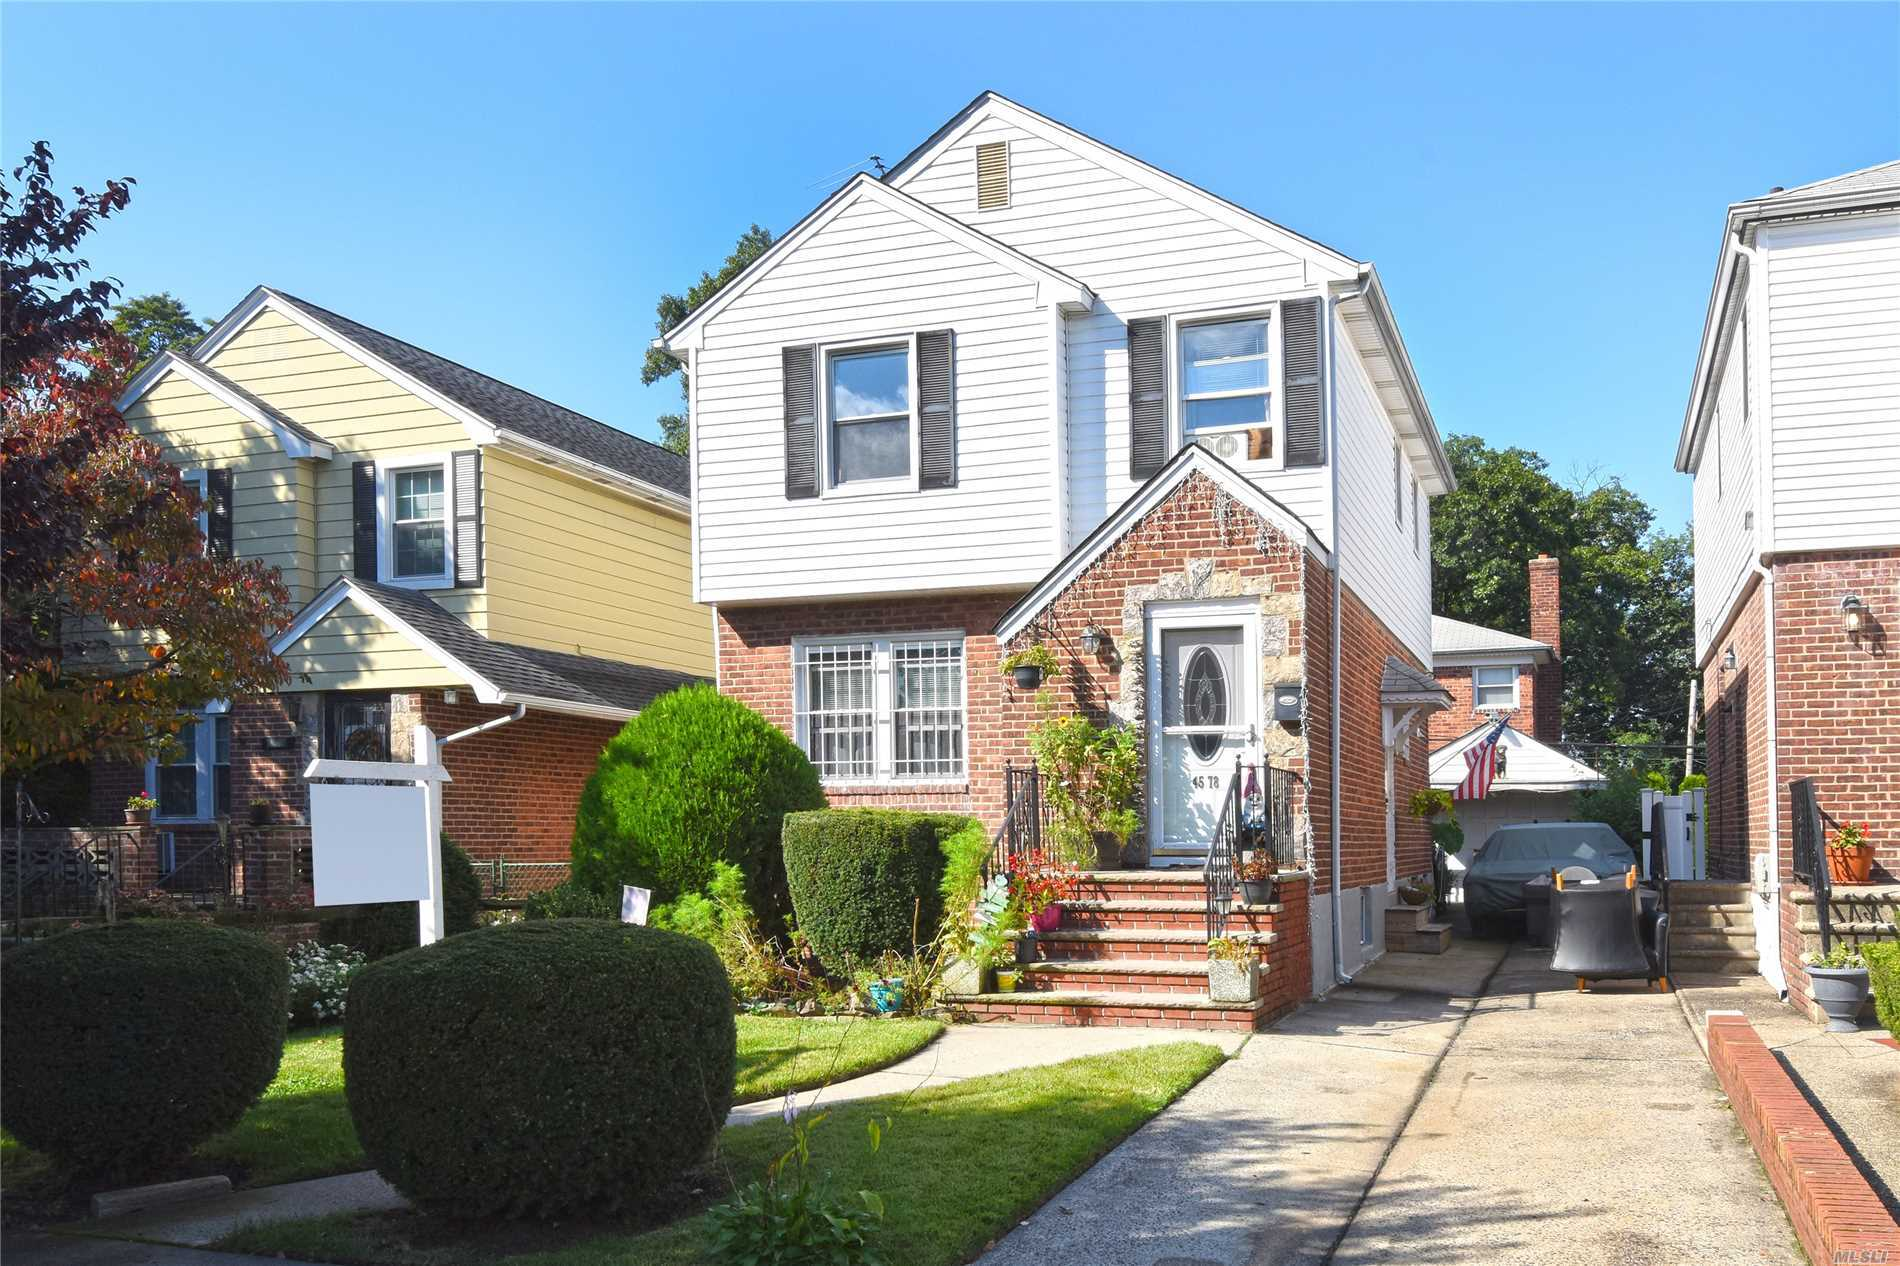 Lovely Detached Colonial Conveniently Located To Shopping & Transportation - Q27 To Main Street #7 Train. Updated Electric And New Boiler. Must See! S.D.26: P.S.107, I.S.25, Francis Lewis H.S.